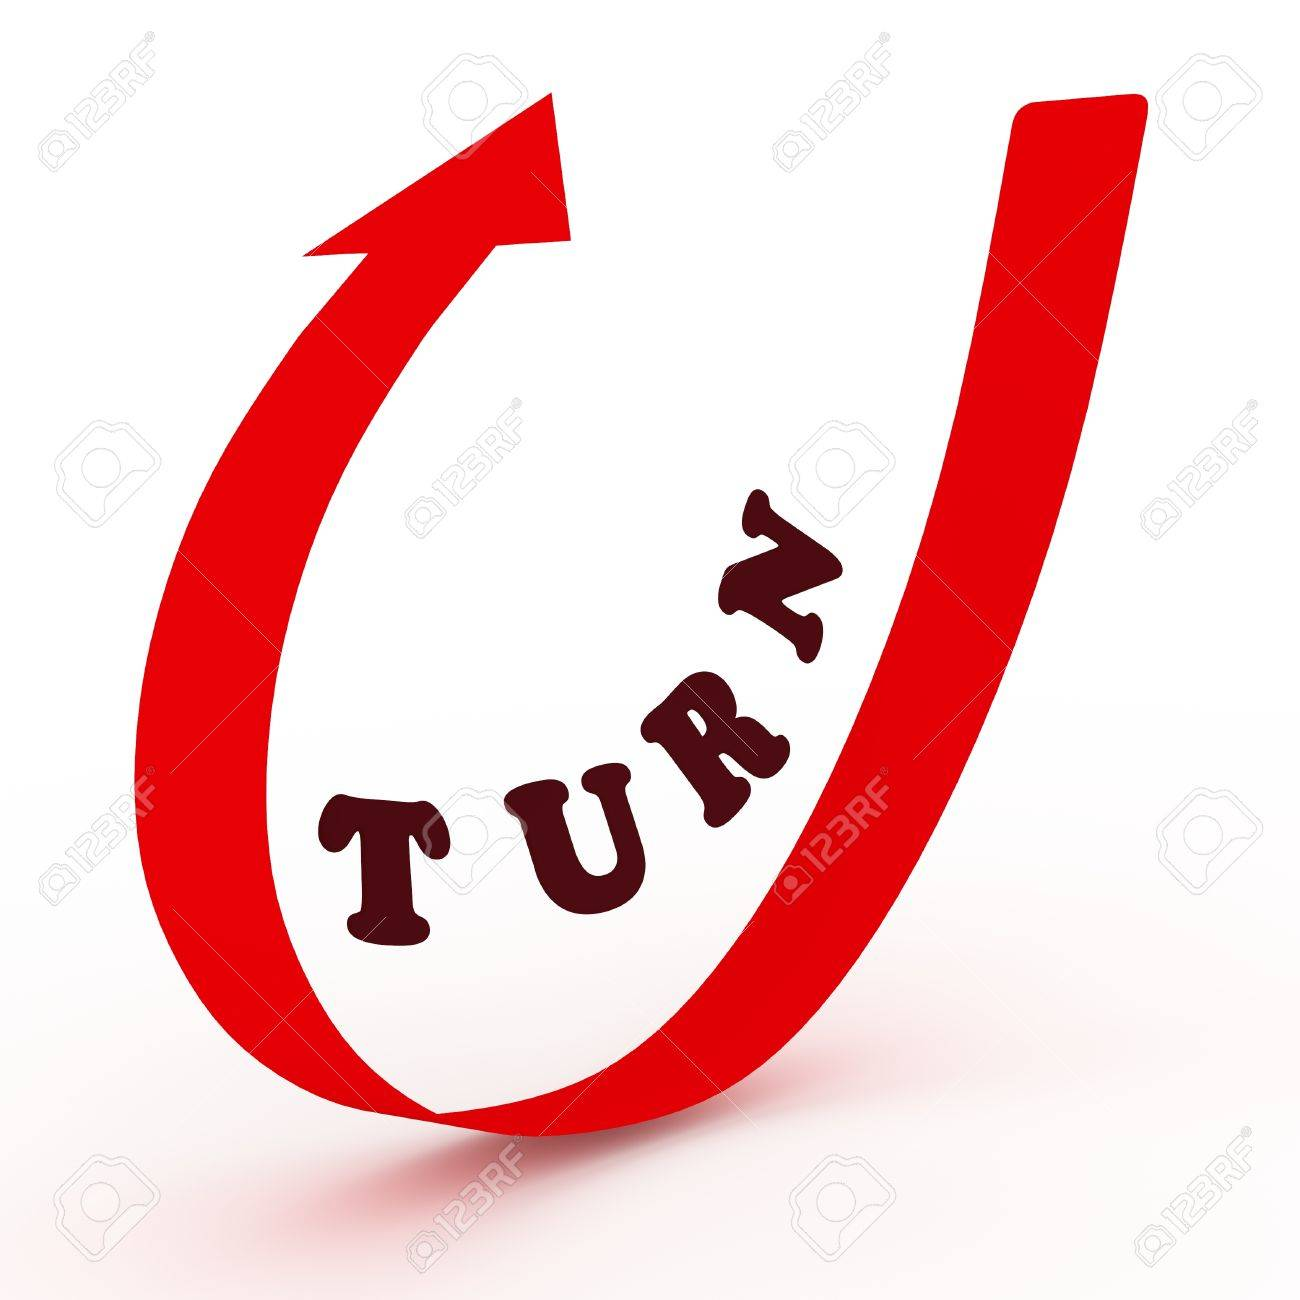 illustration of a curved arrow with the word turn in the middle